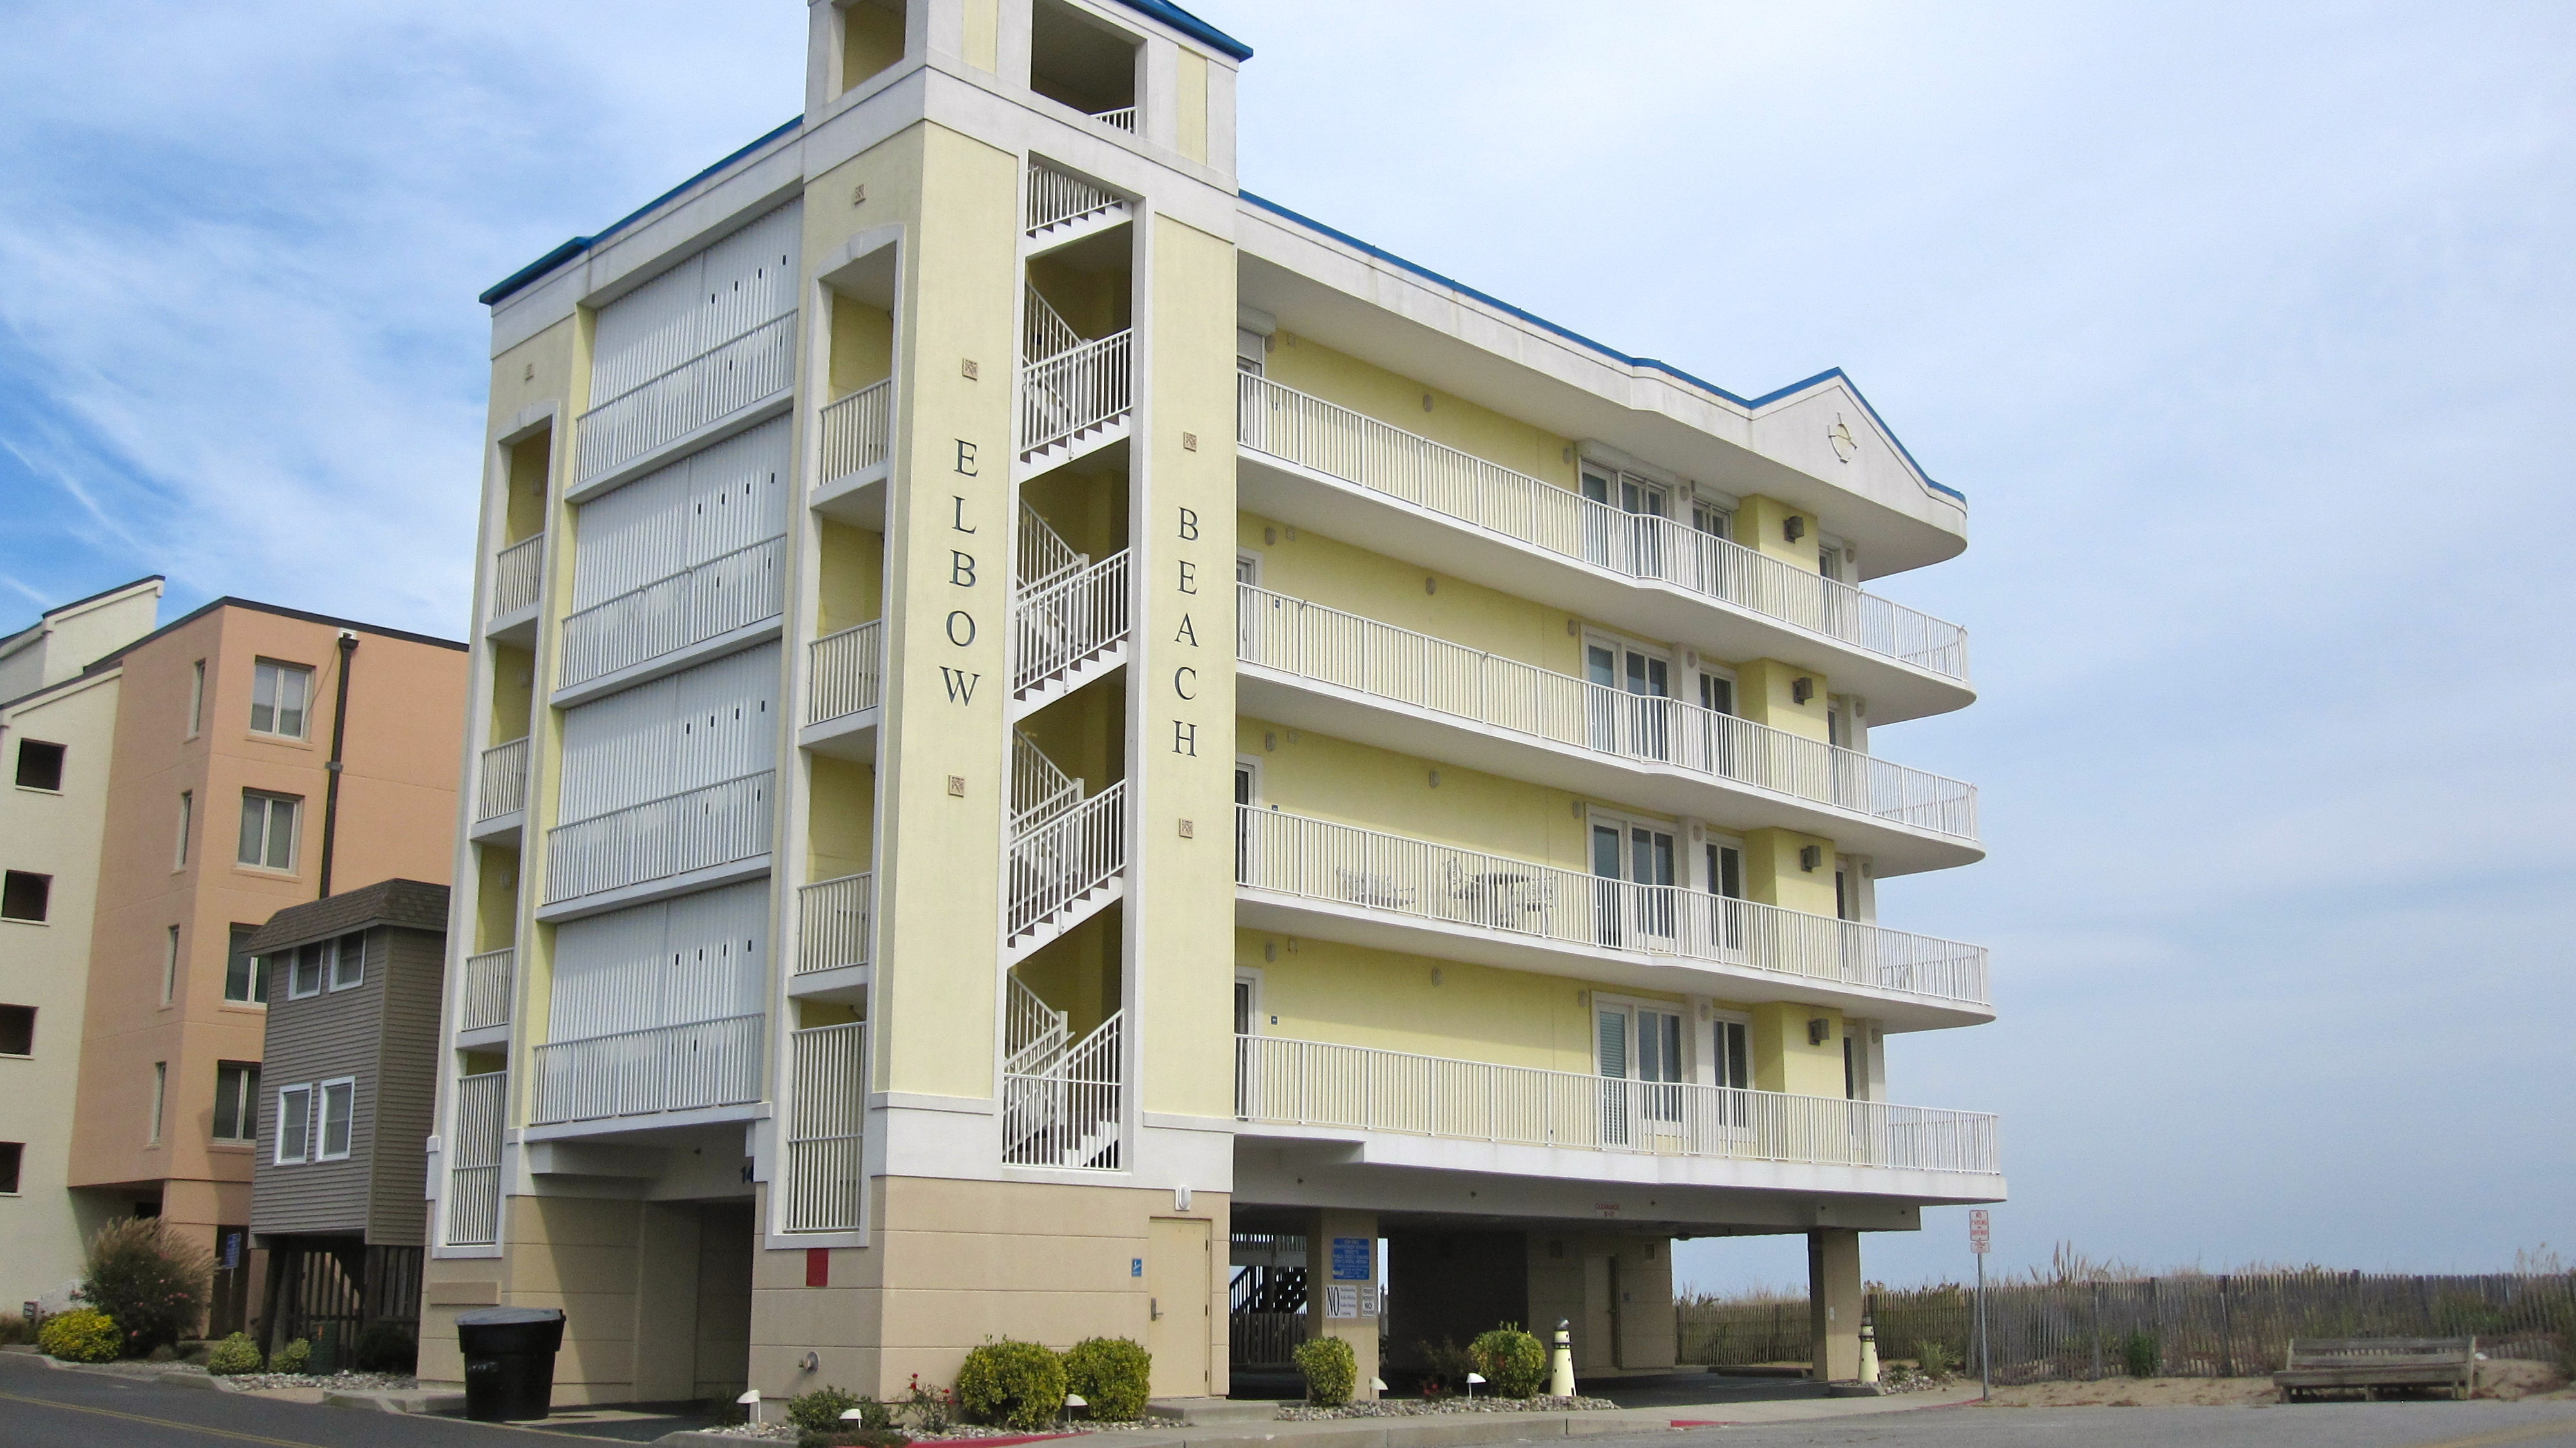 Just Listed: 101 Elbow Beach, Ocean City, MD – Boutique Ocean Front Property!